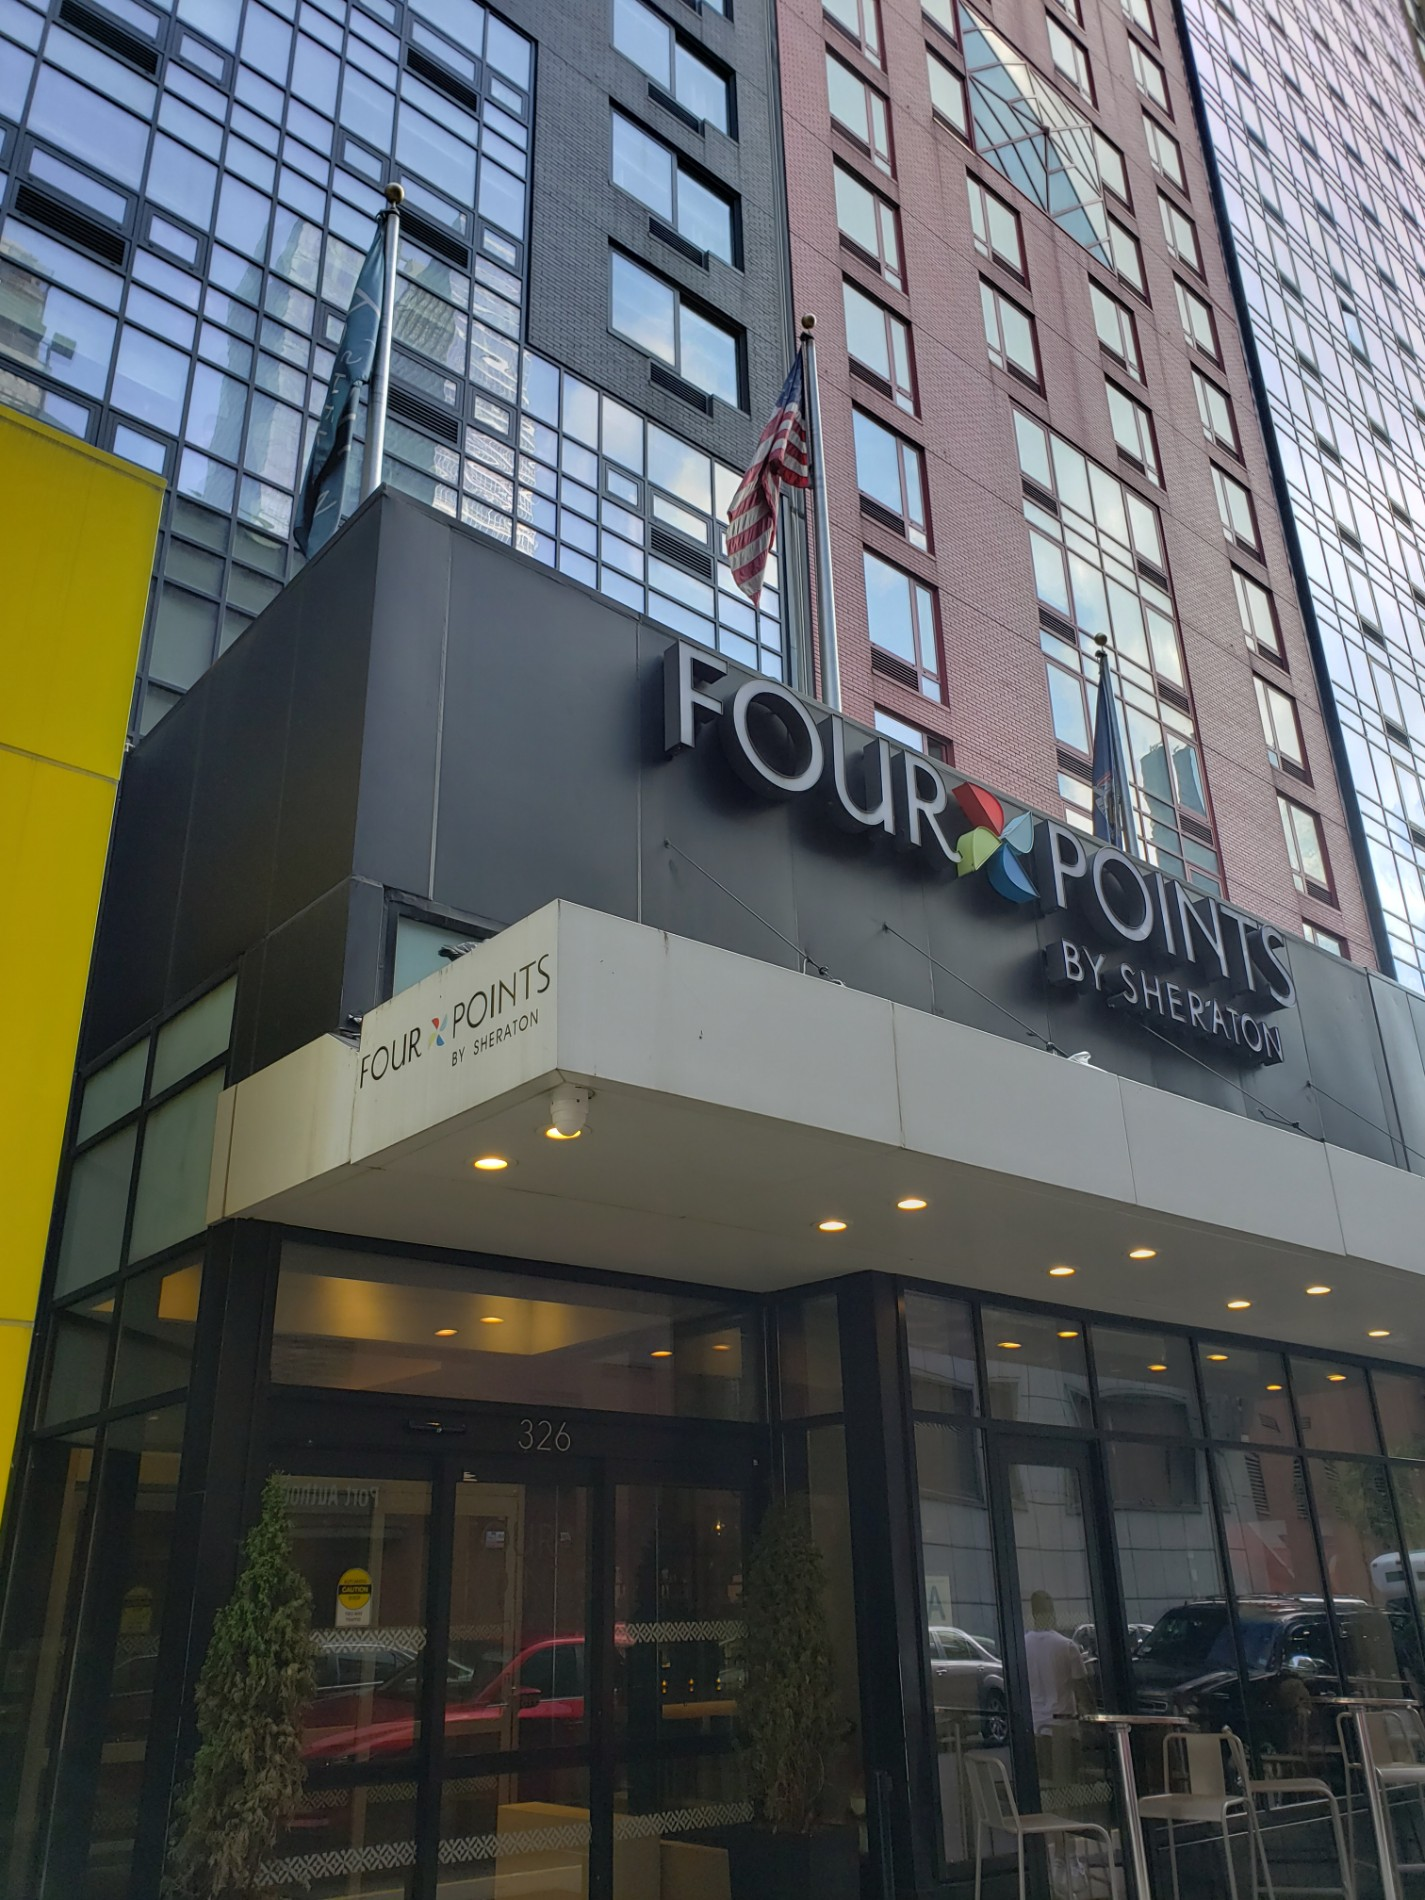 Four Points by Sheraton Midtown - Times Square | 326 West 40th Street, New York, NY, 10018 | +1 (212) 967-8585